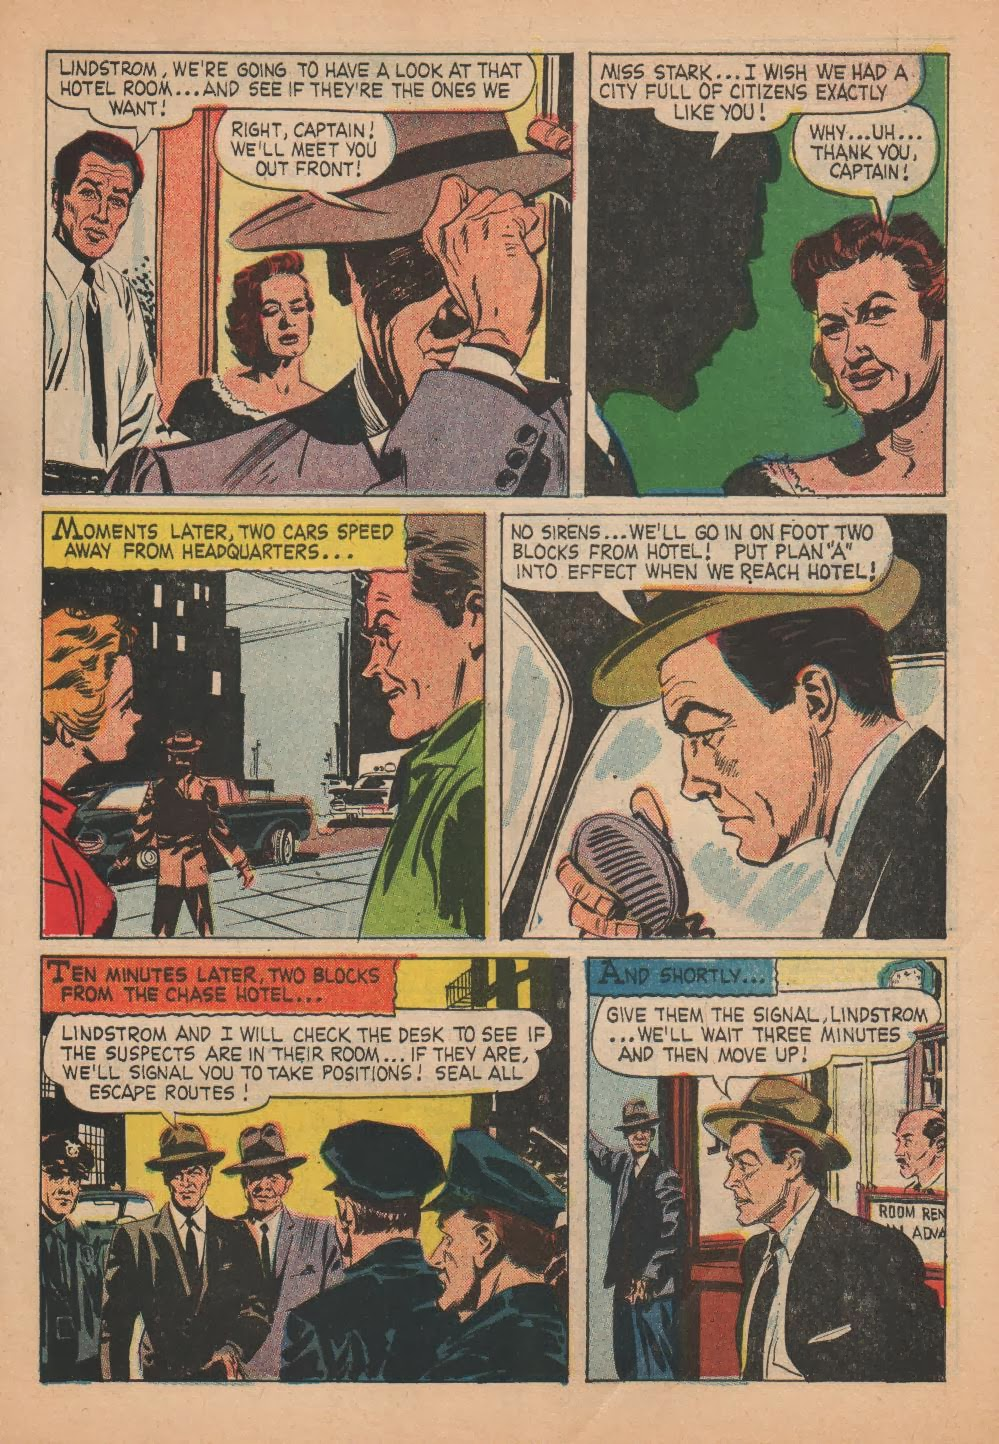 Mel Keefer Was Mostly Known For His War Comics